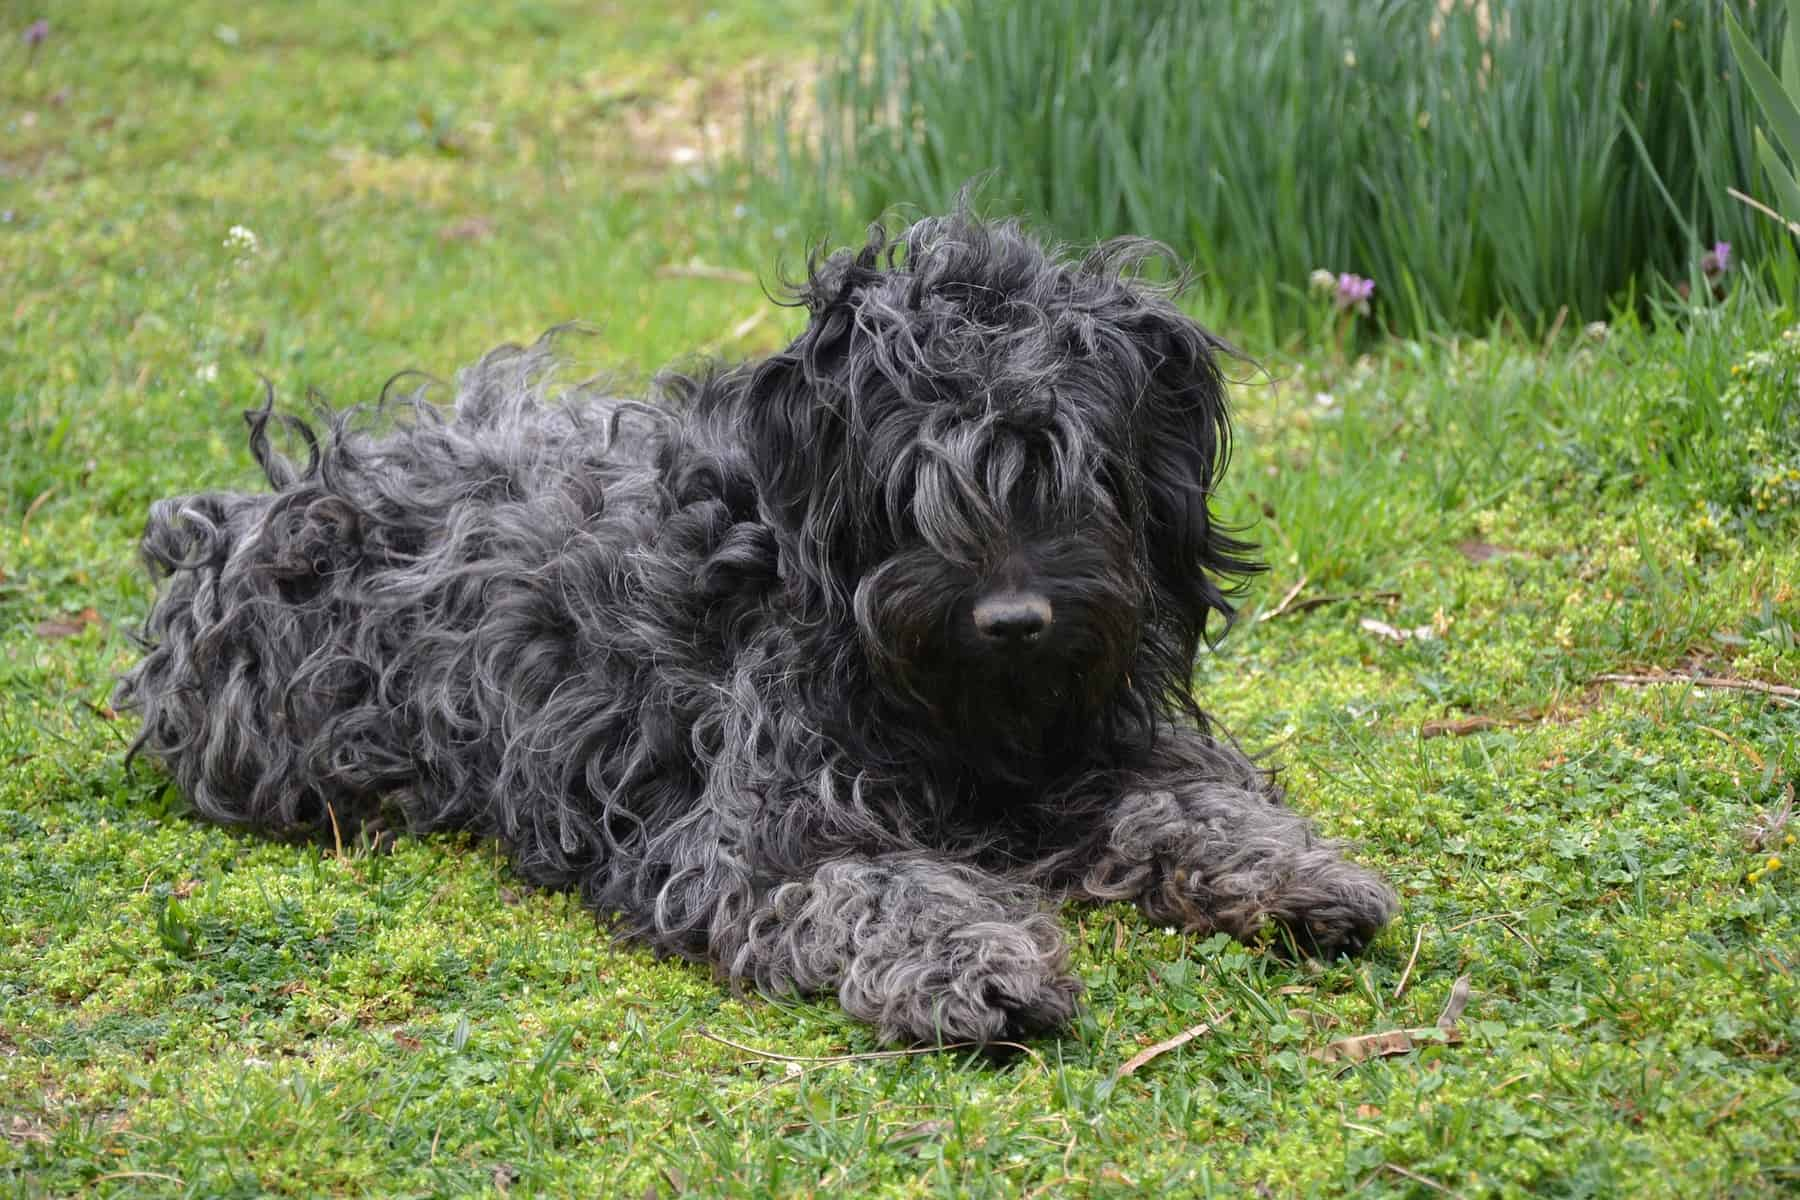 Puli with brushed coat laying on the grass